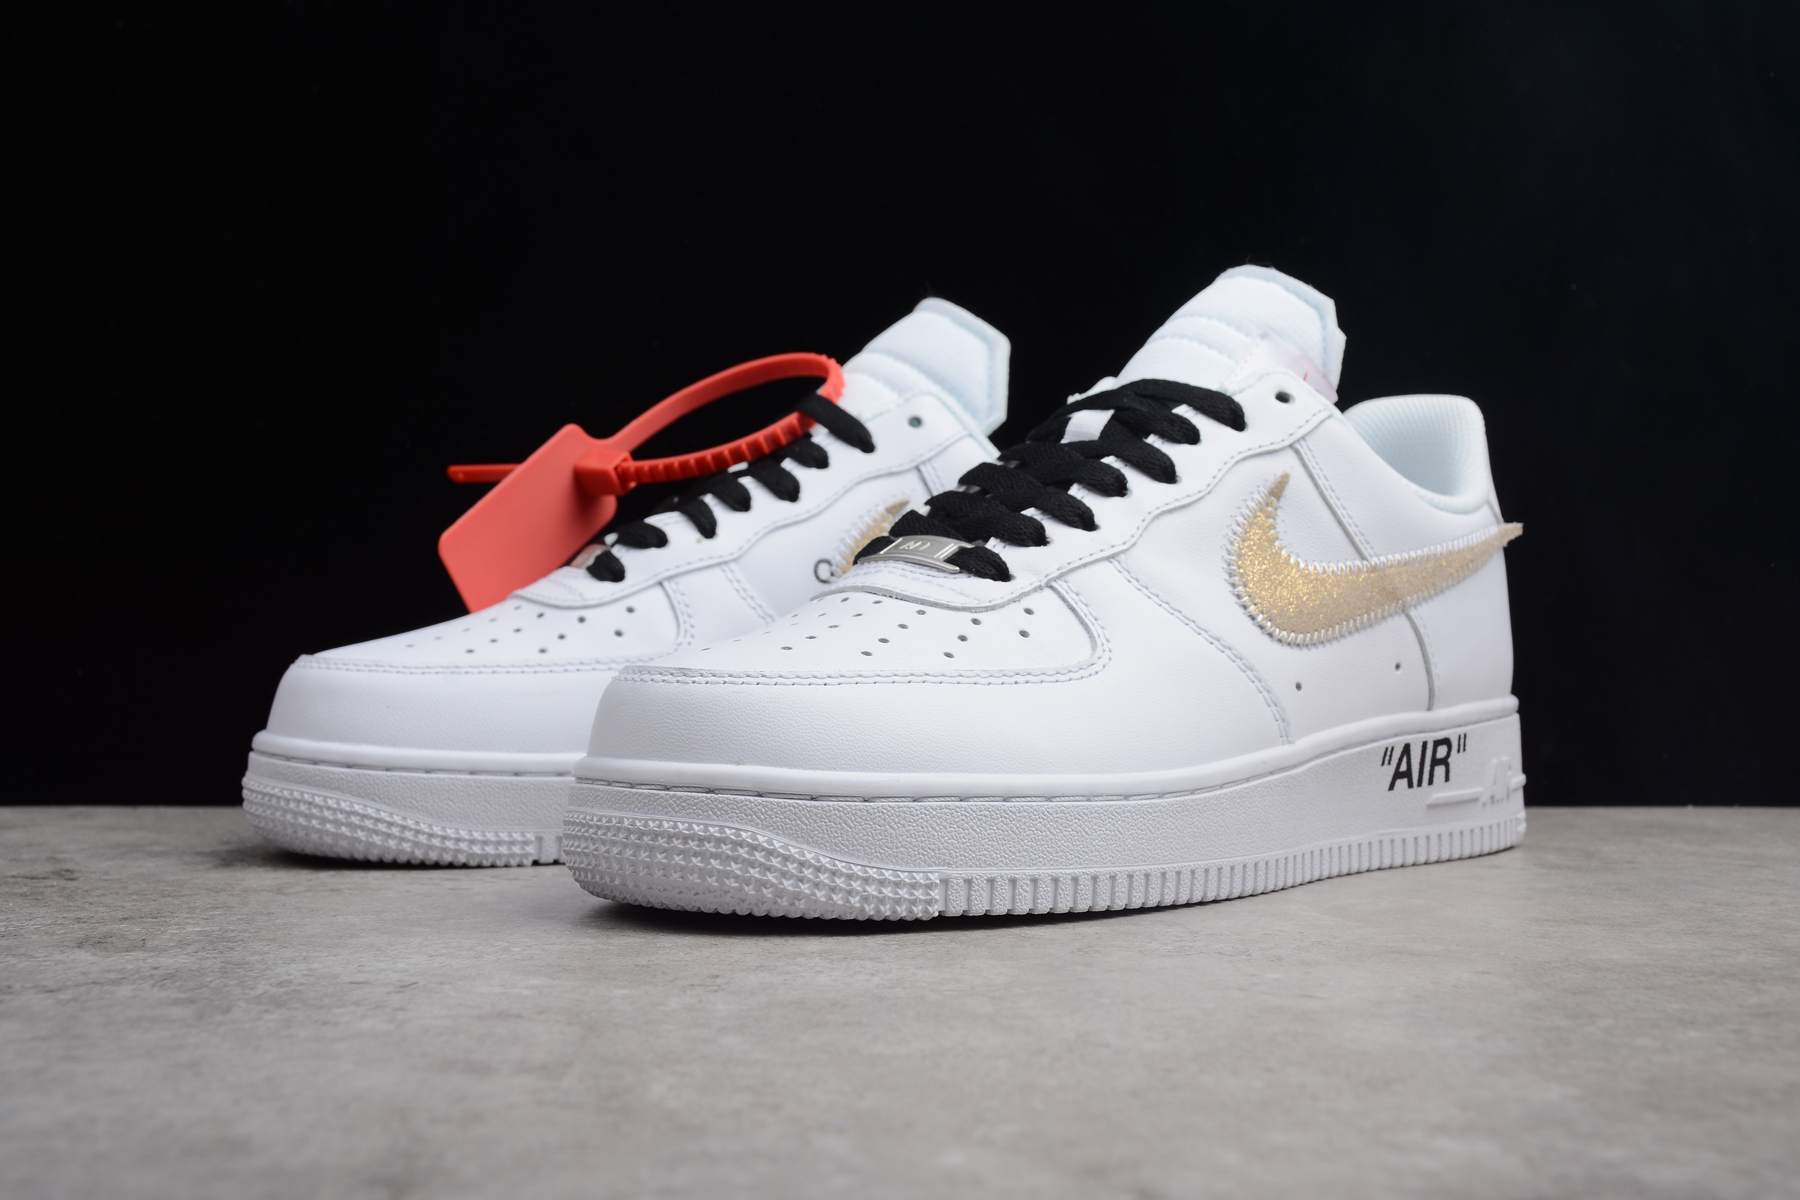 2018 OFF WHITE x Nike Air Force 1 Low White Black Gold